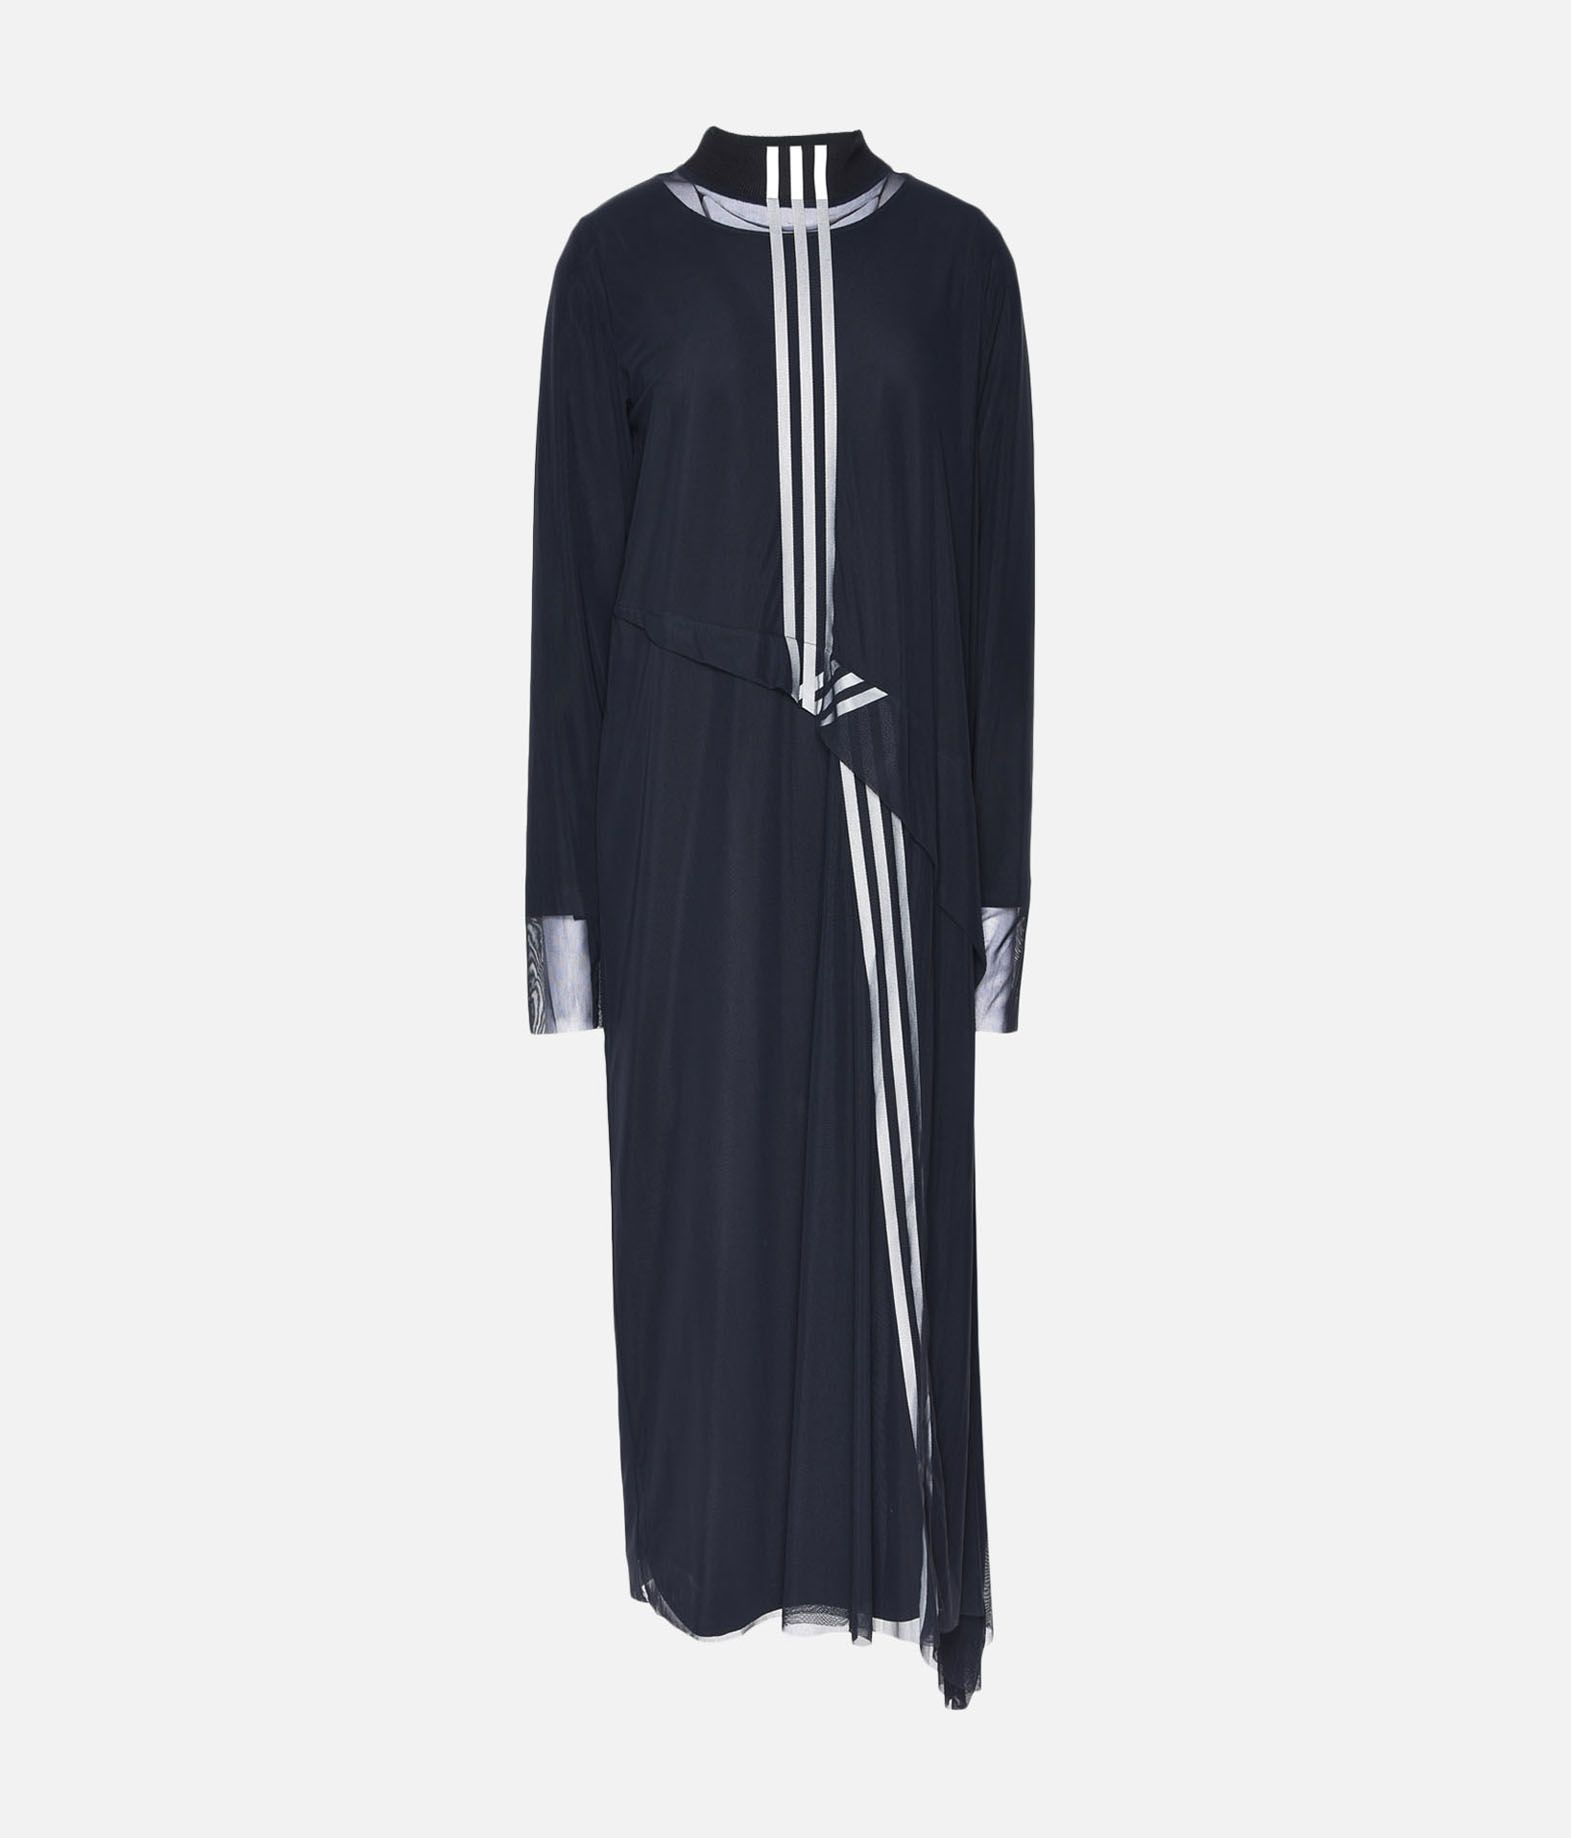 Y-3 Y-3 3-Stripes Mesh Dress Long dress Woman f